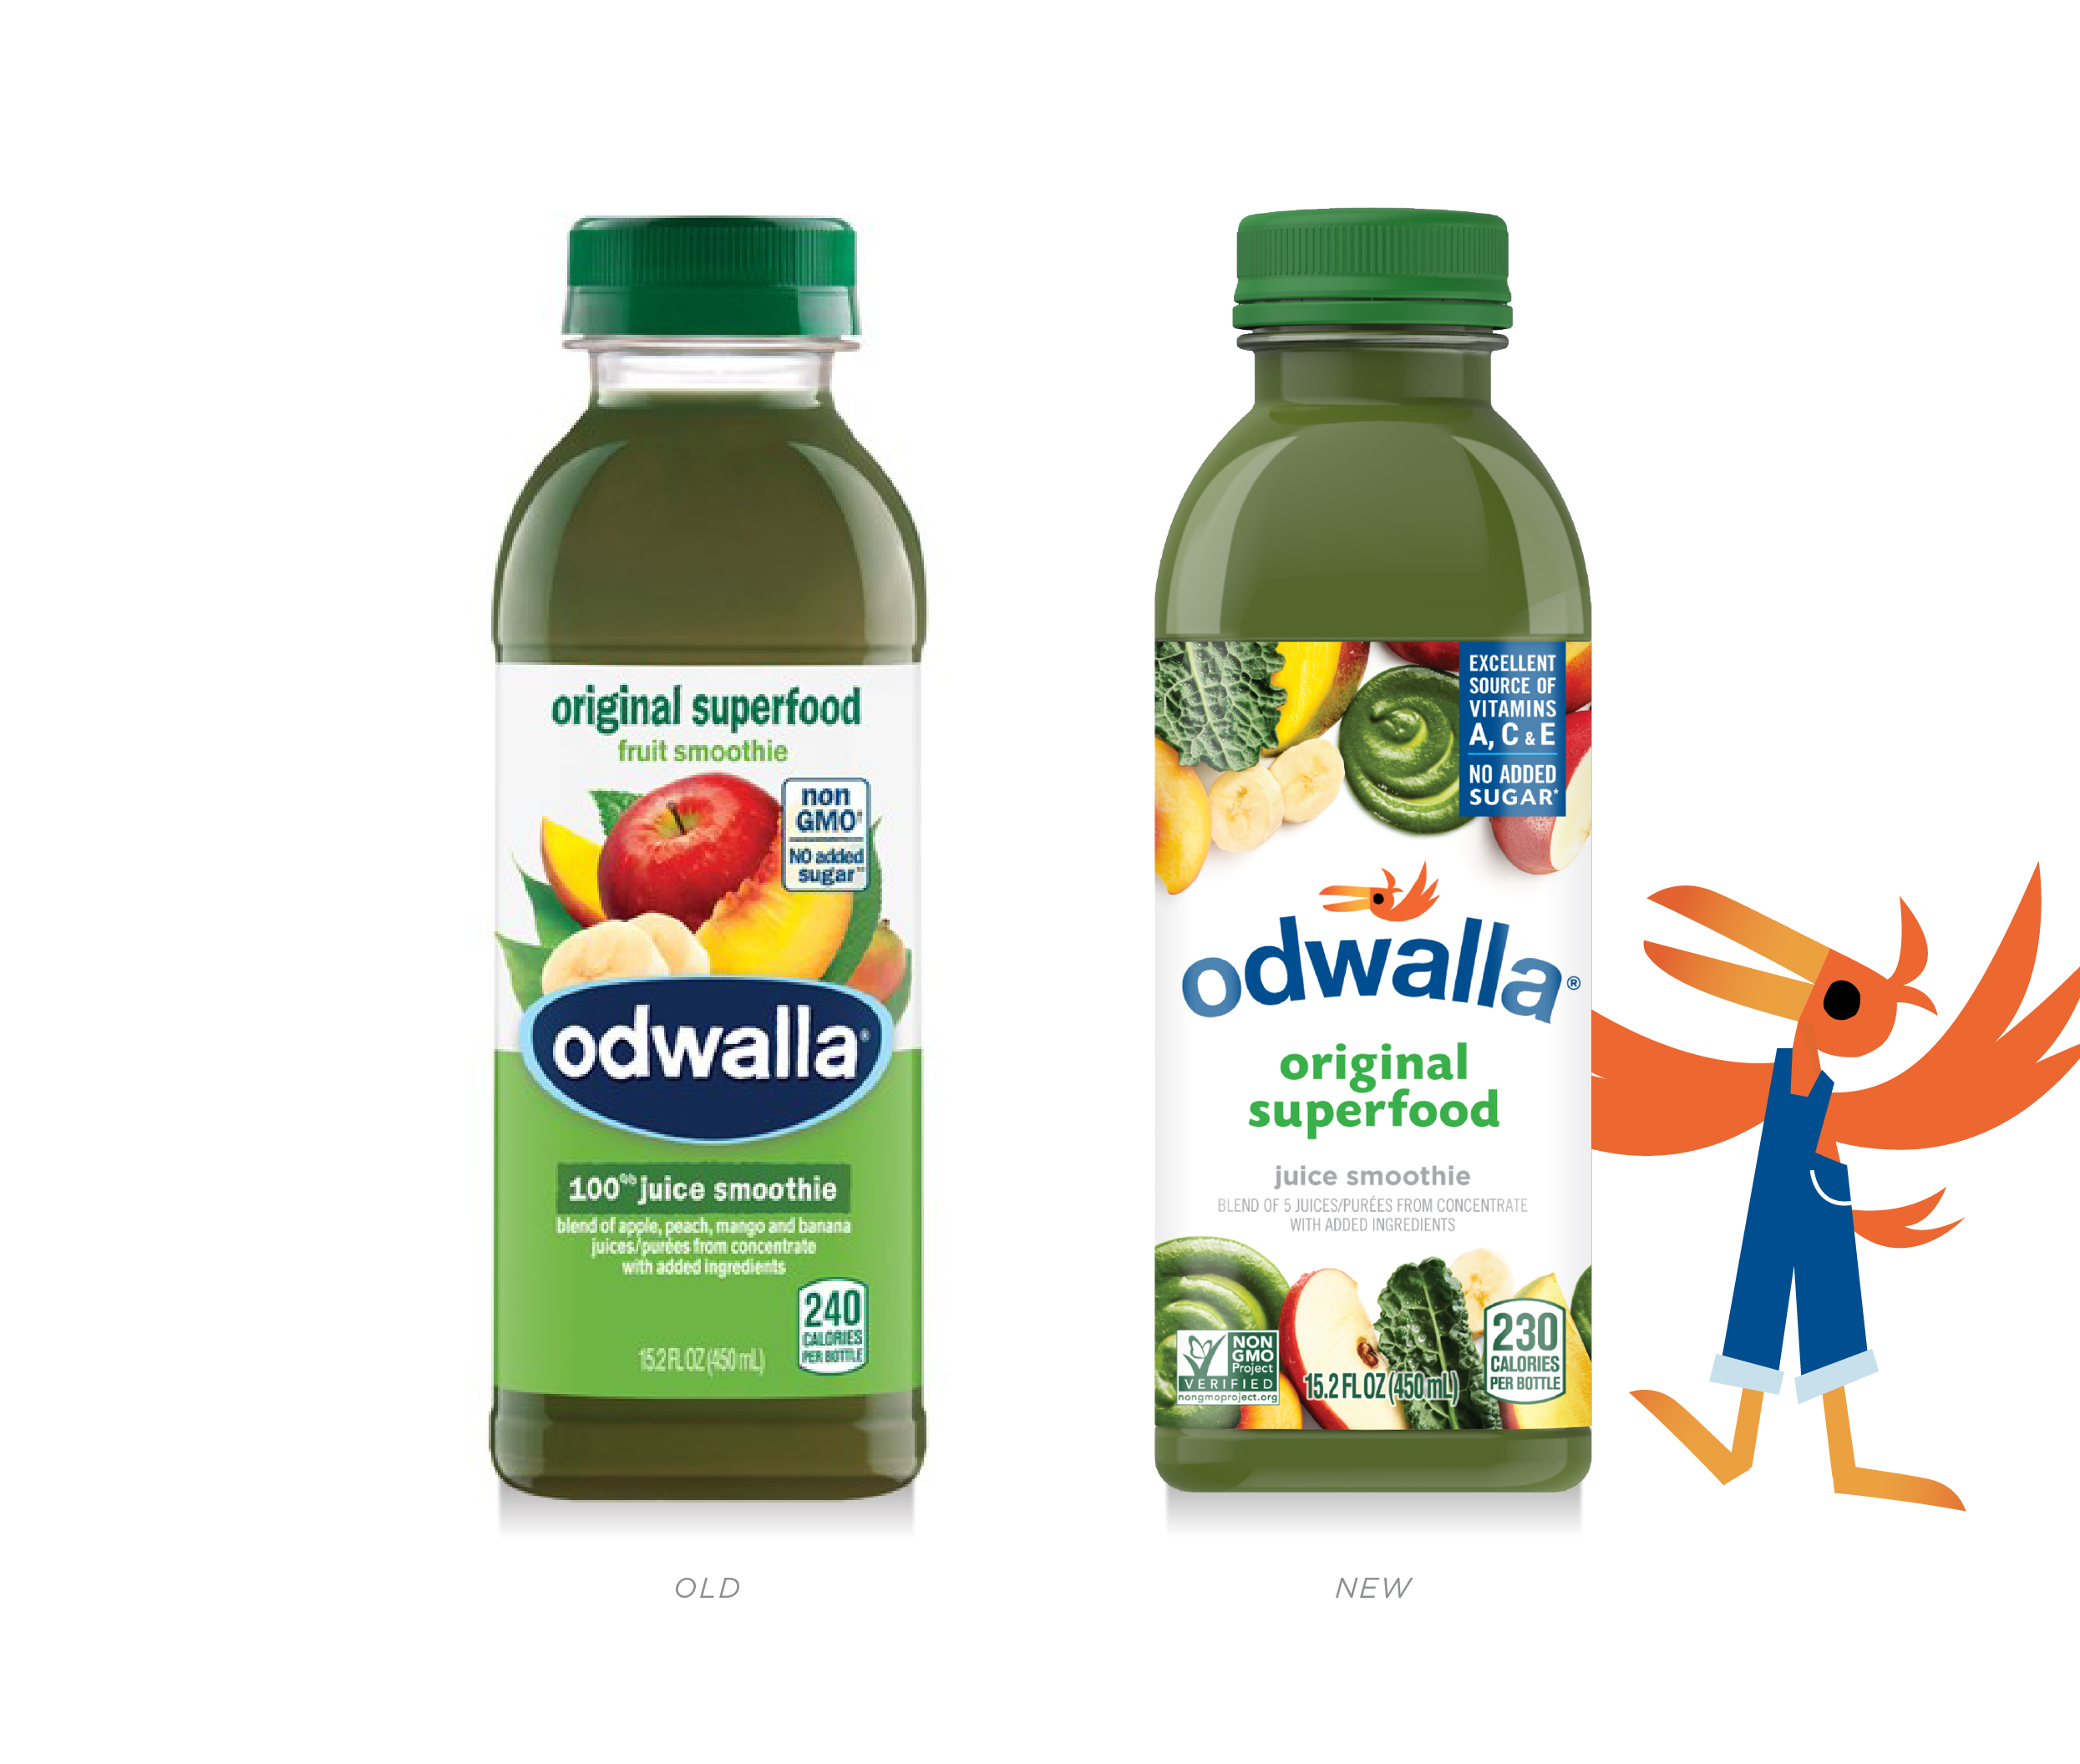 Odwalla Label transformation